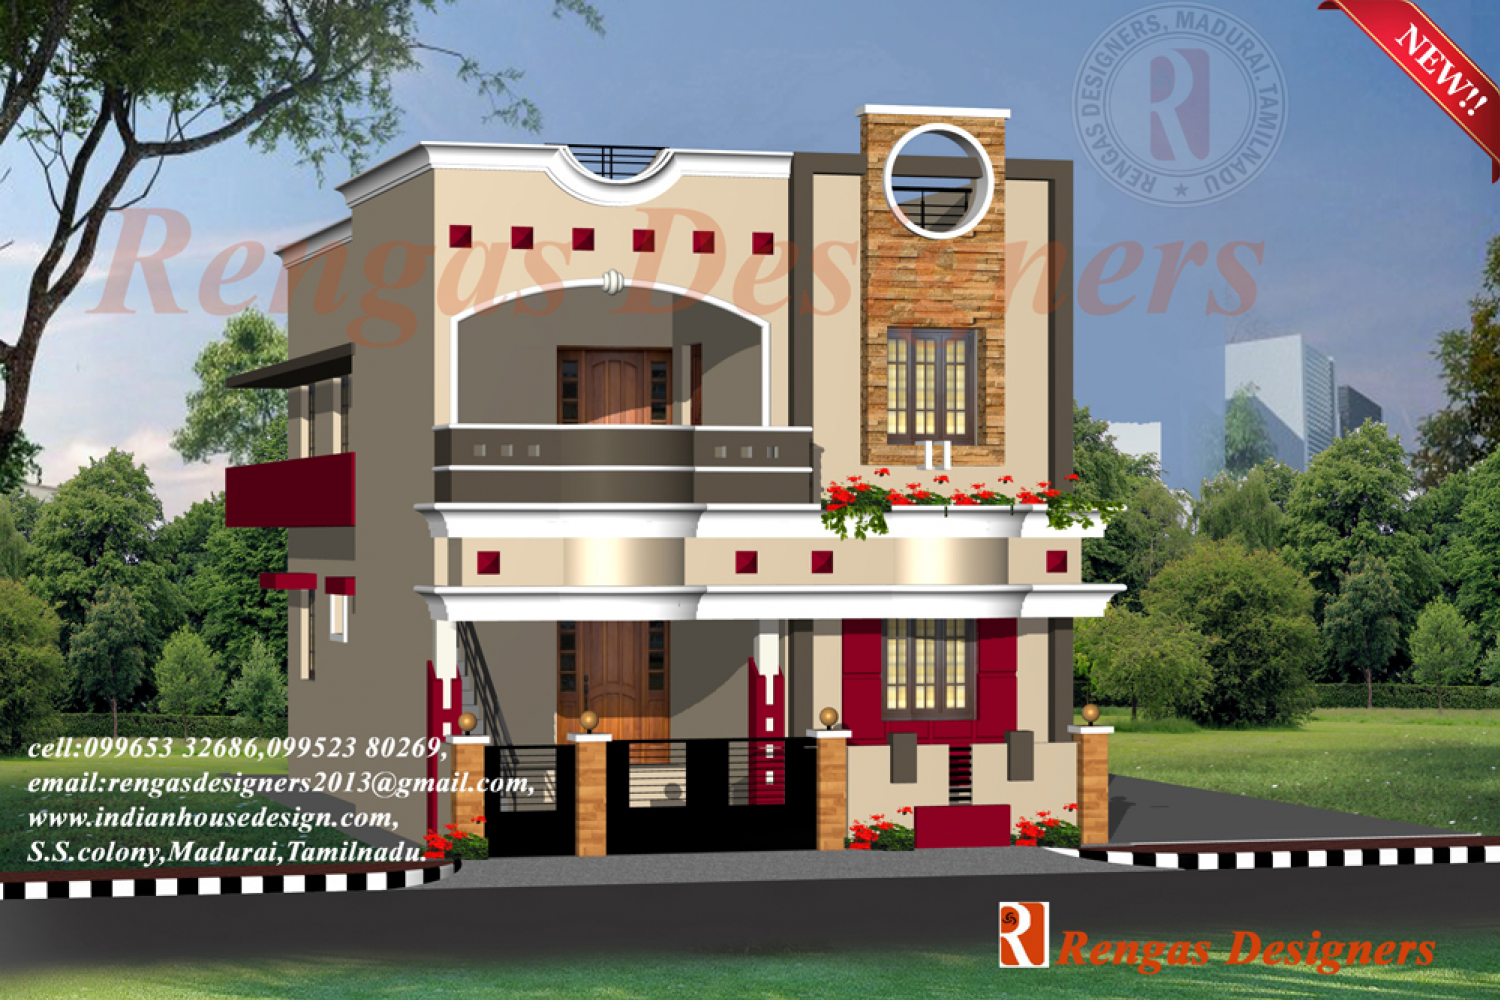 Front Elevation Designs Latest : Latest projects villa de reve pinterest photo wall